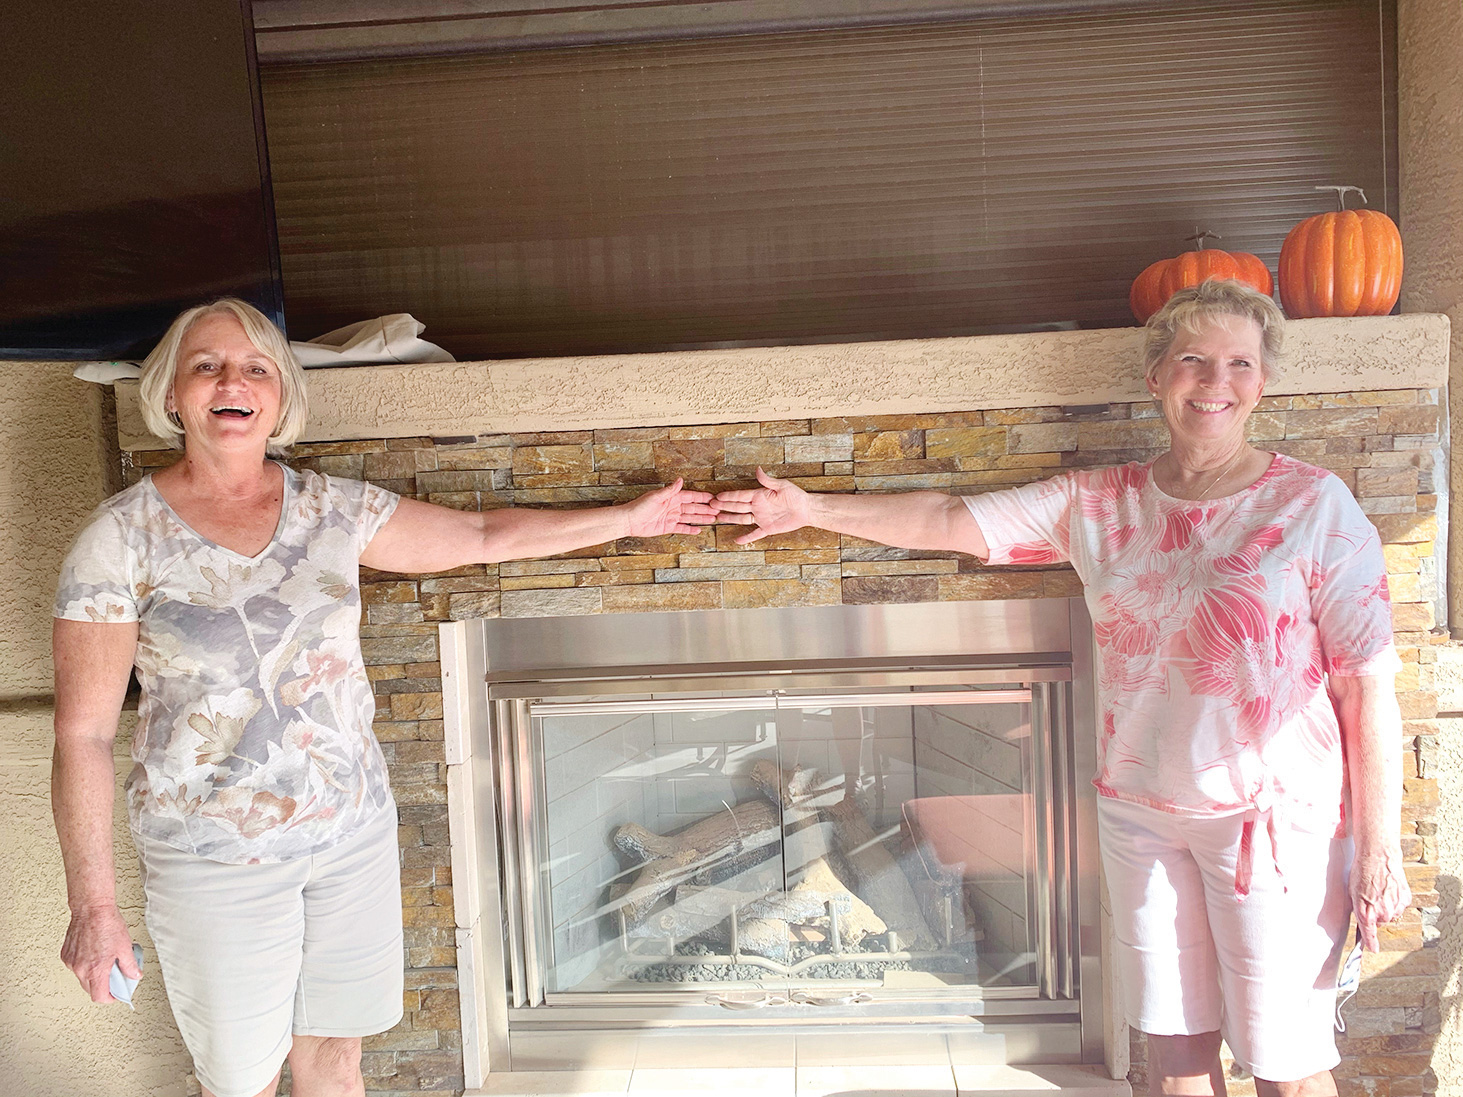 Congratulations to our winners this year, Rhonda McGree (right) for low gross and Mary Nielsen (left) for low net.